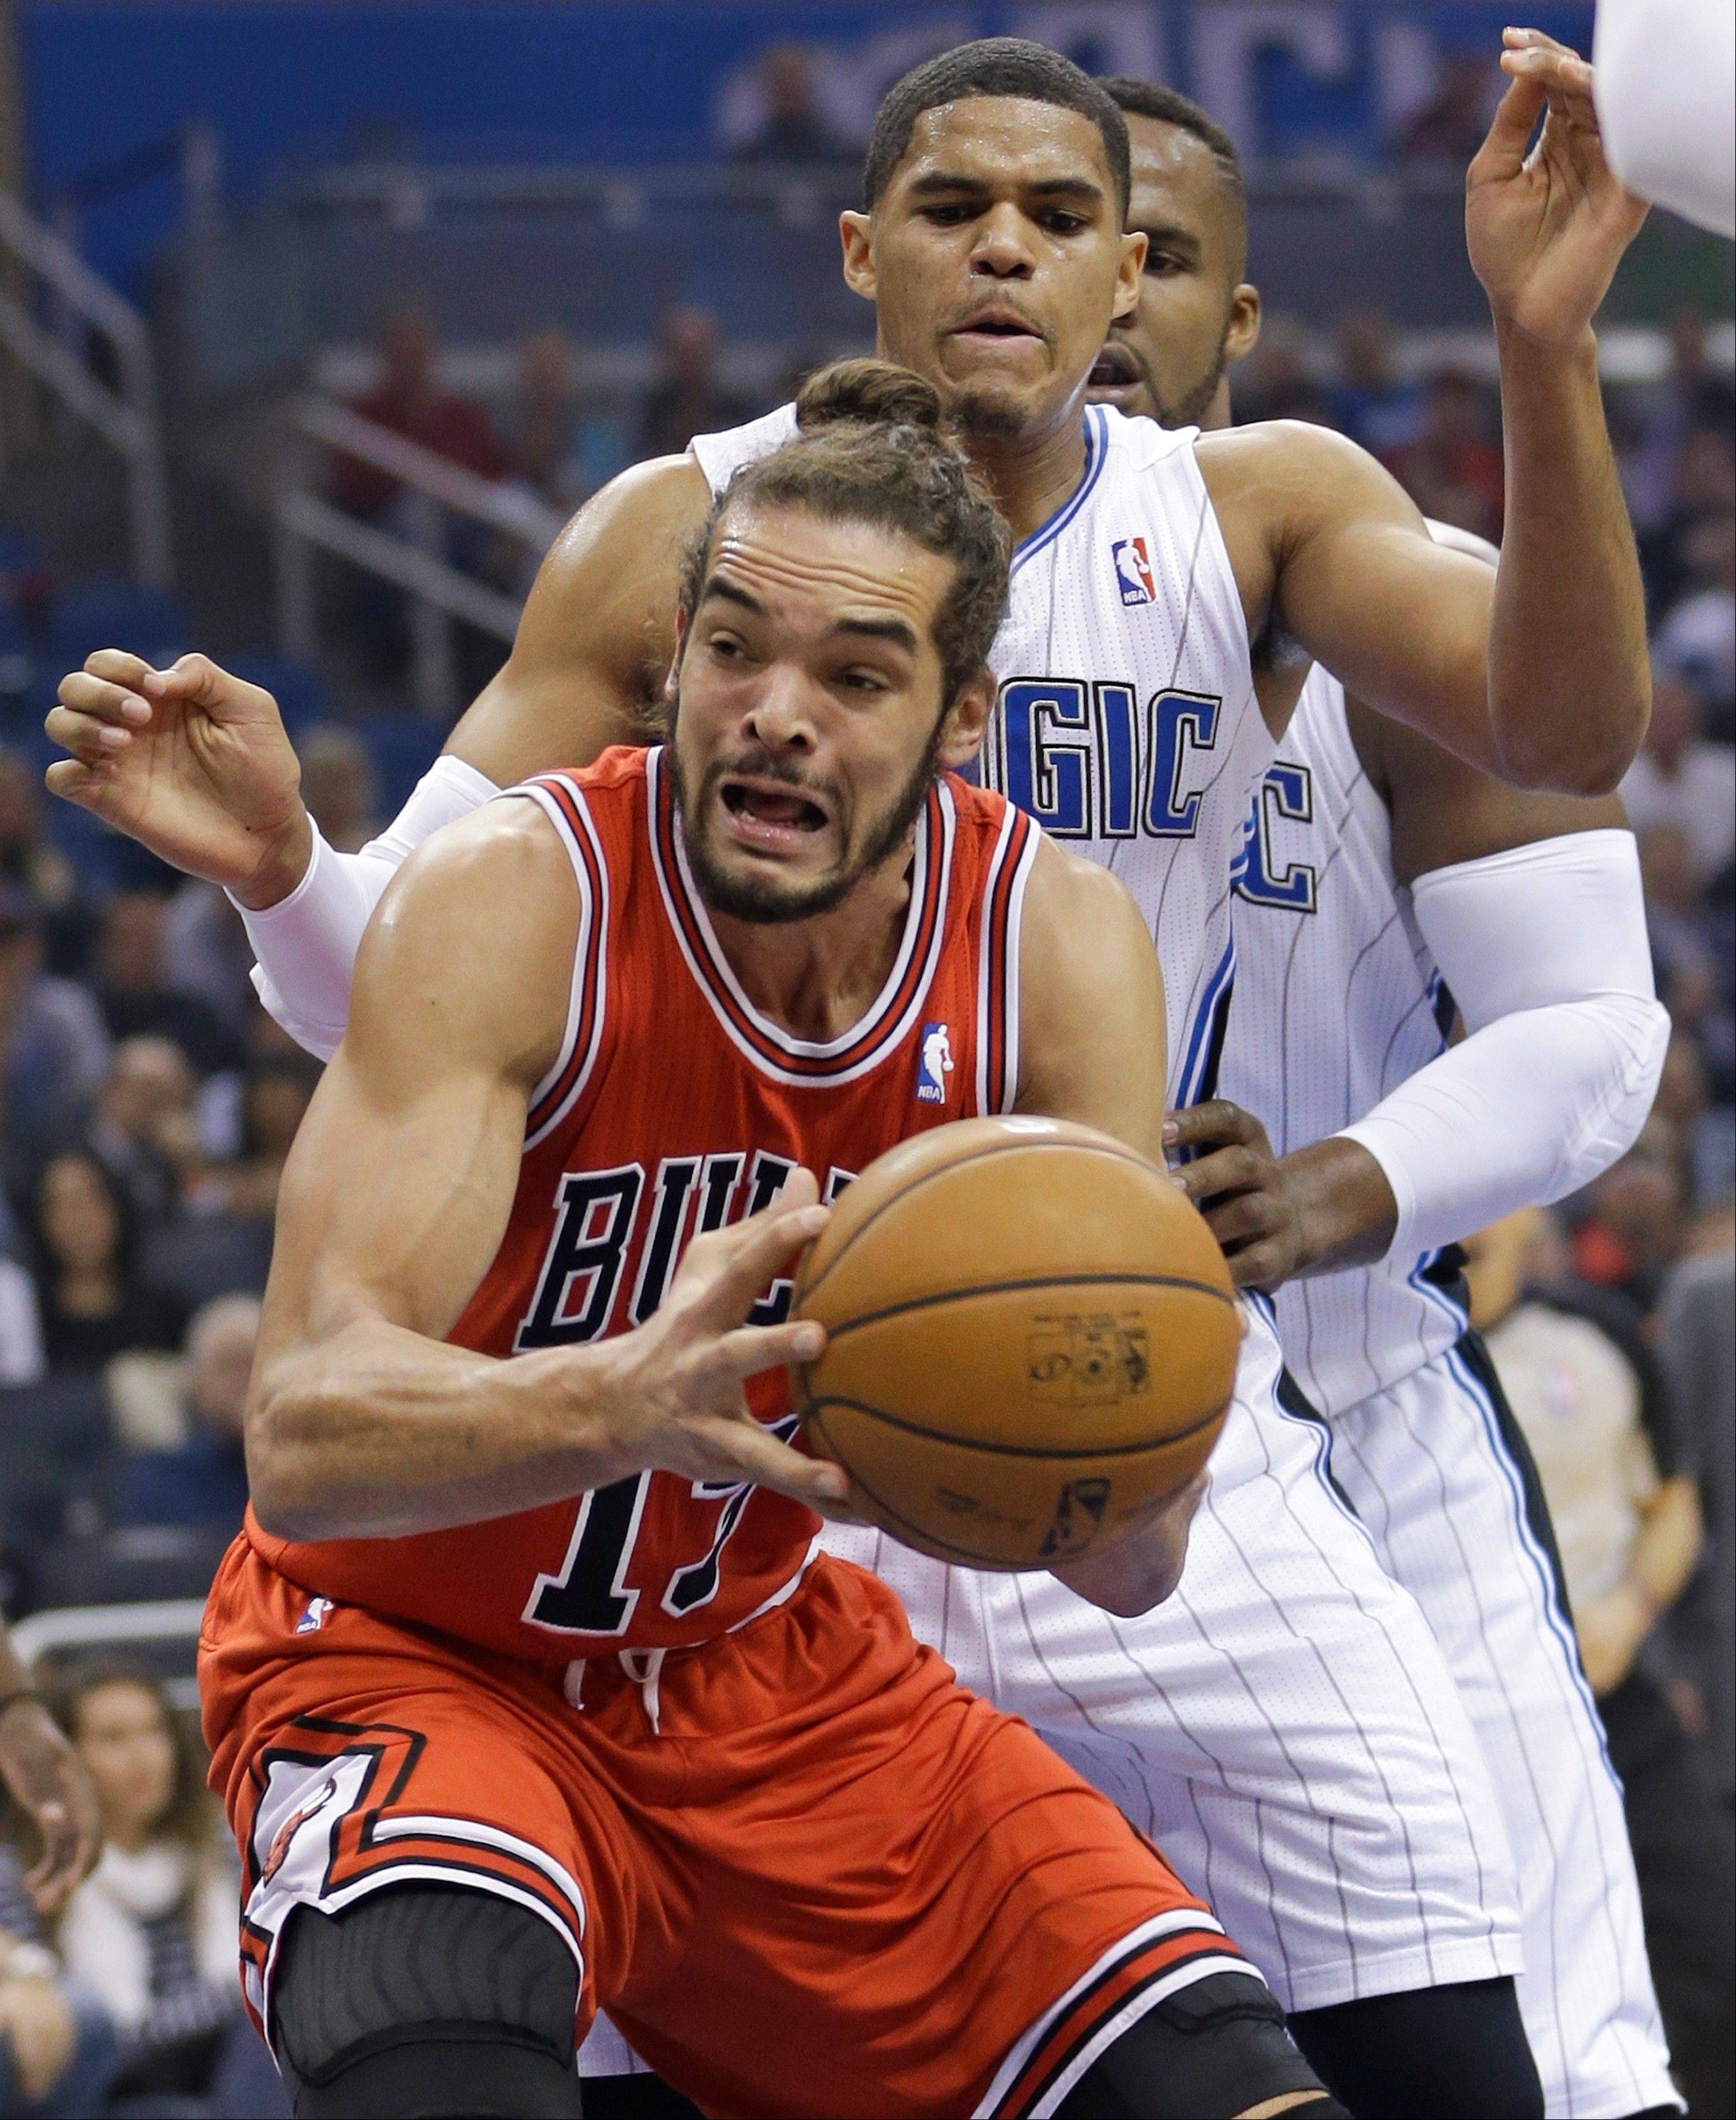 Chicago Bulls� Joakim Noah, front, looks to go up for a shot off a rebound in front of Orlando Magic�s Tobias Harris during the first half Wednesday in Orlando. The Bulls beat the Magic 128-125 in triple overtime.